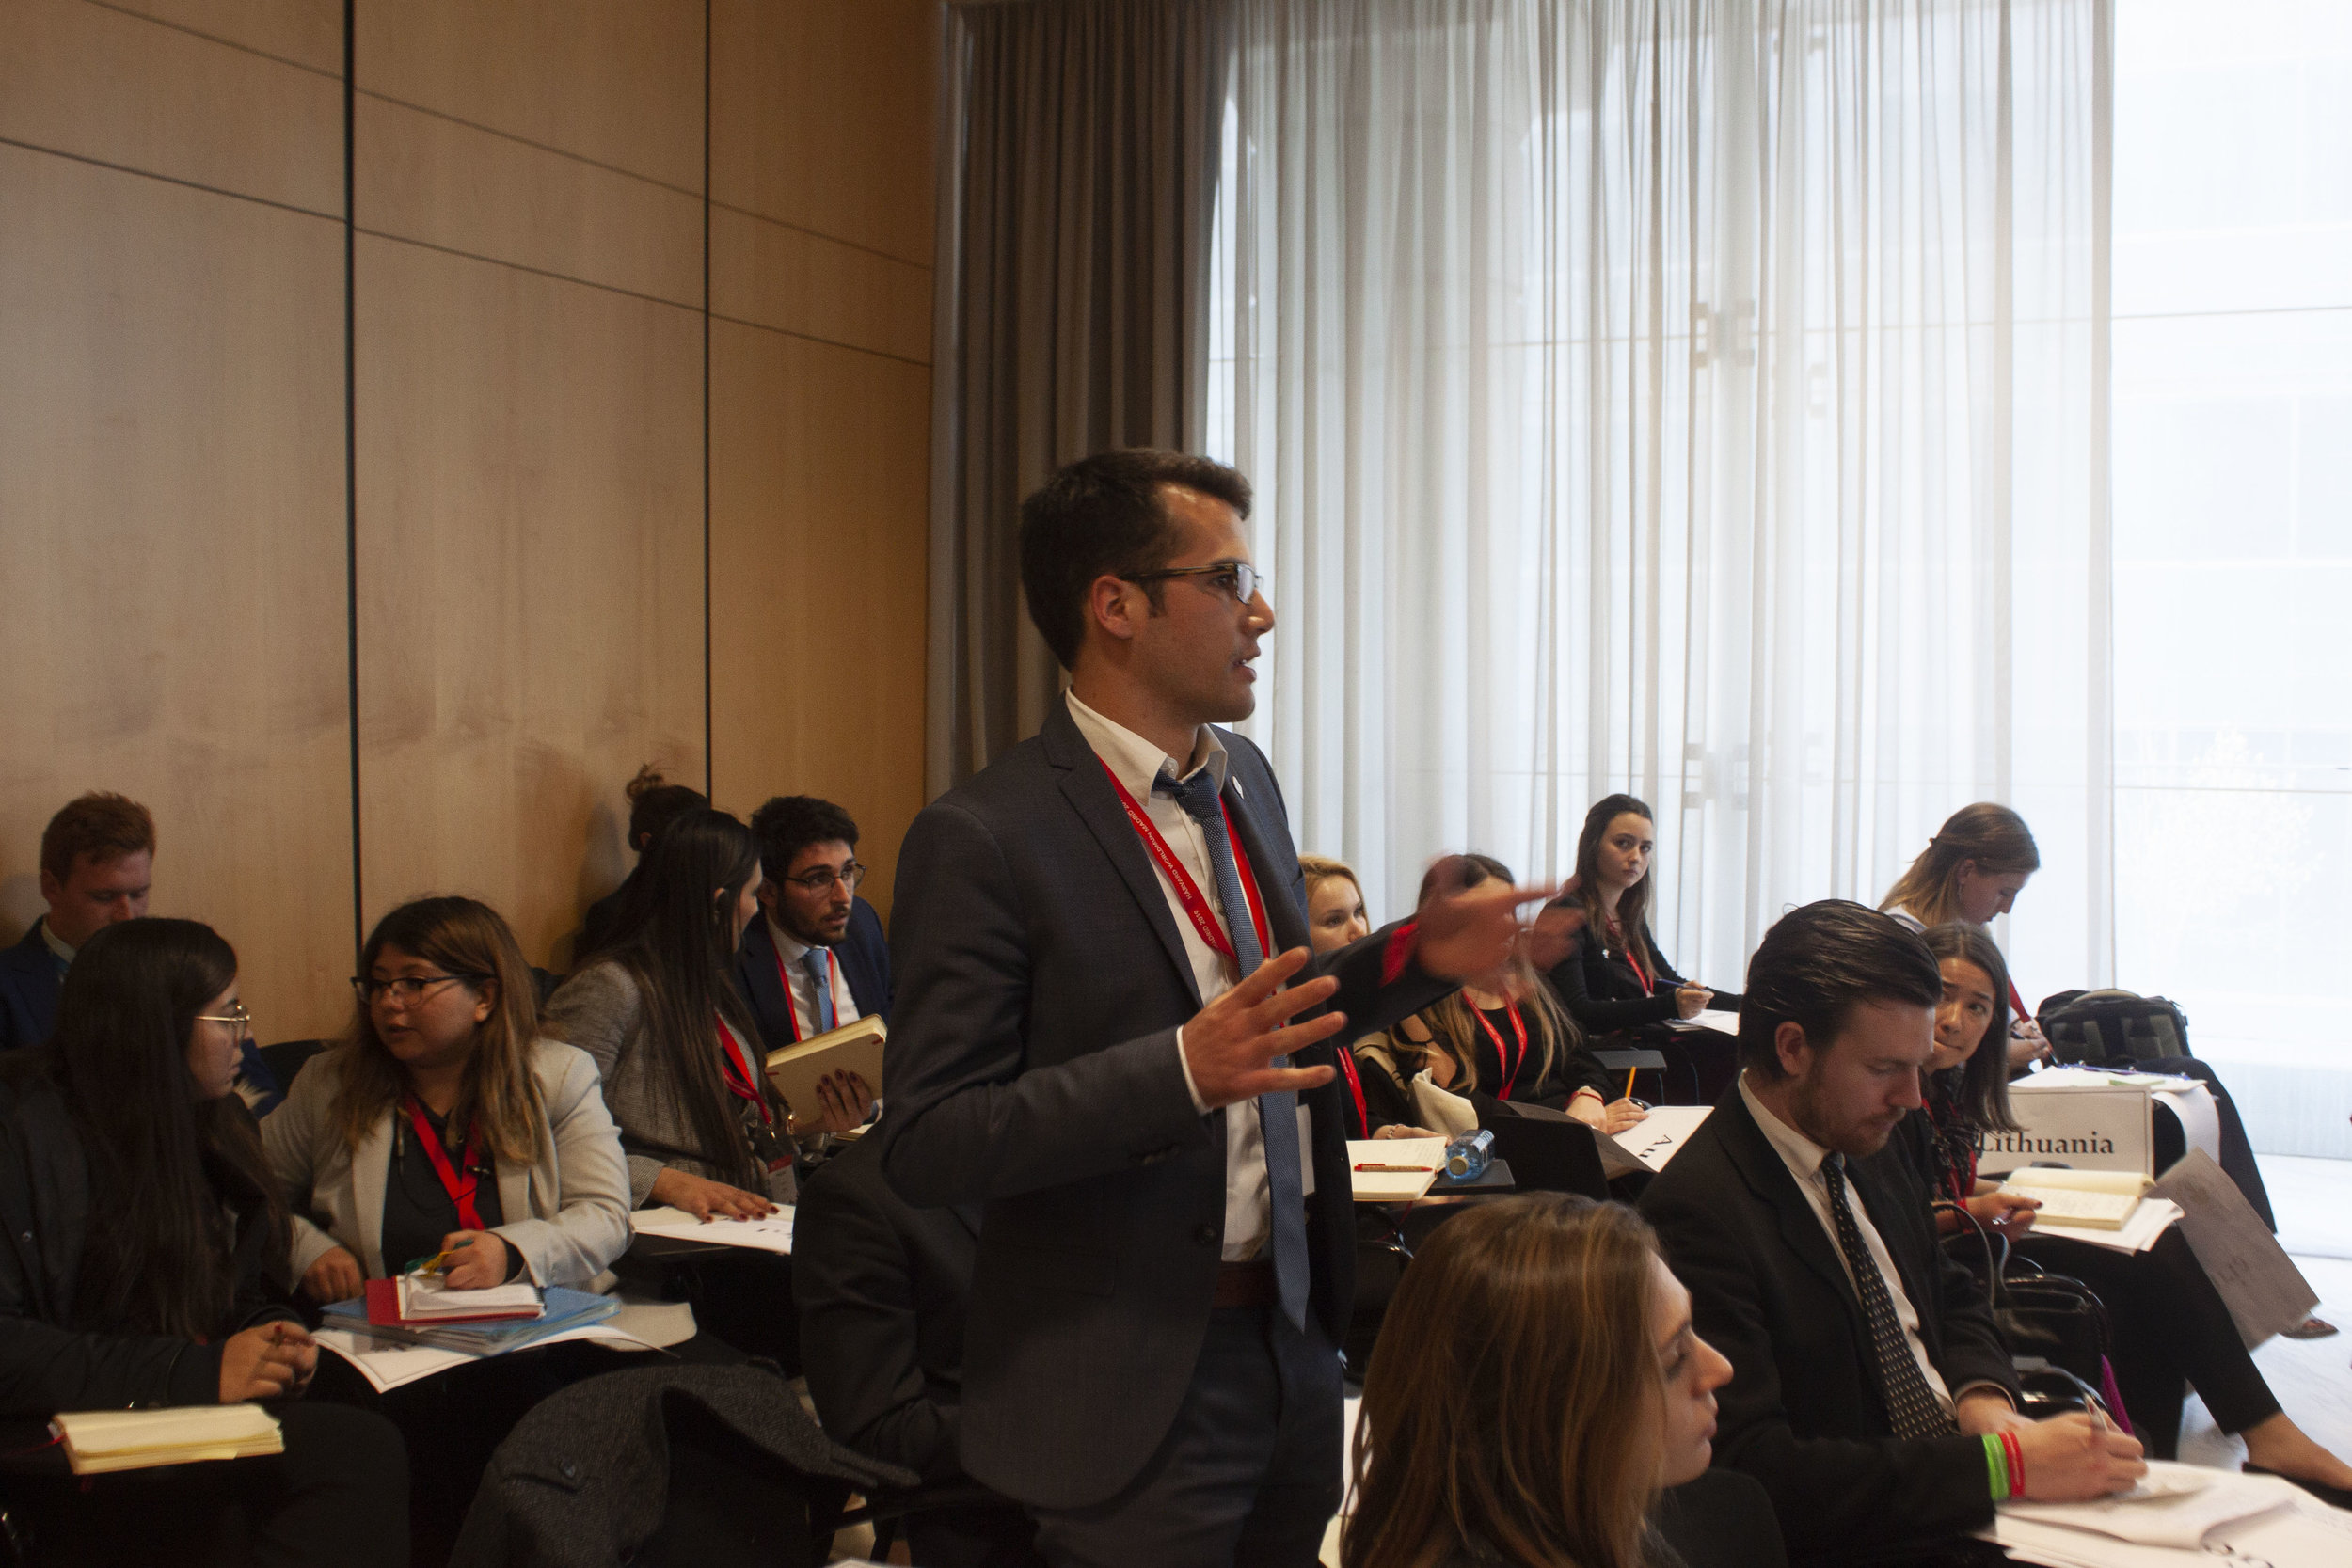 Speak - If you have a fear of speaking in front of people, then you're in the right place to lose it. Model UN is a perfect opportunity to get others to listen to you, become more convincing, practice your delivery and improve your ability to improvise.